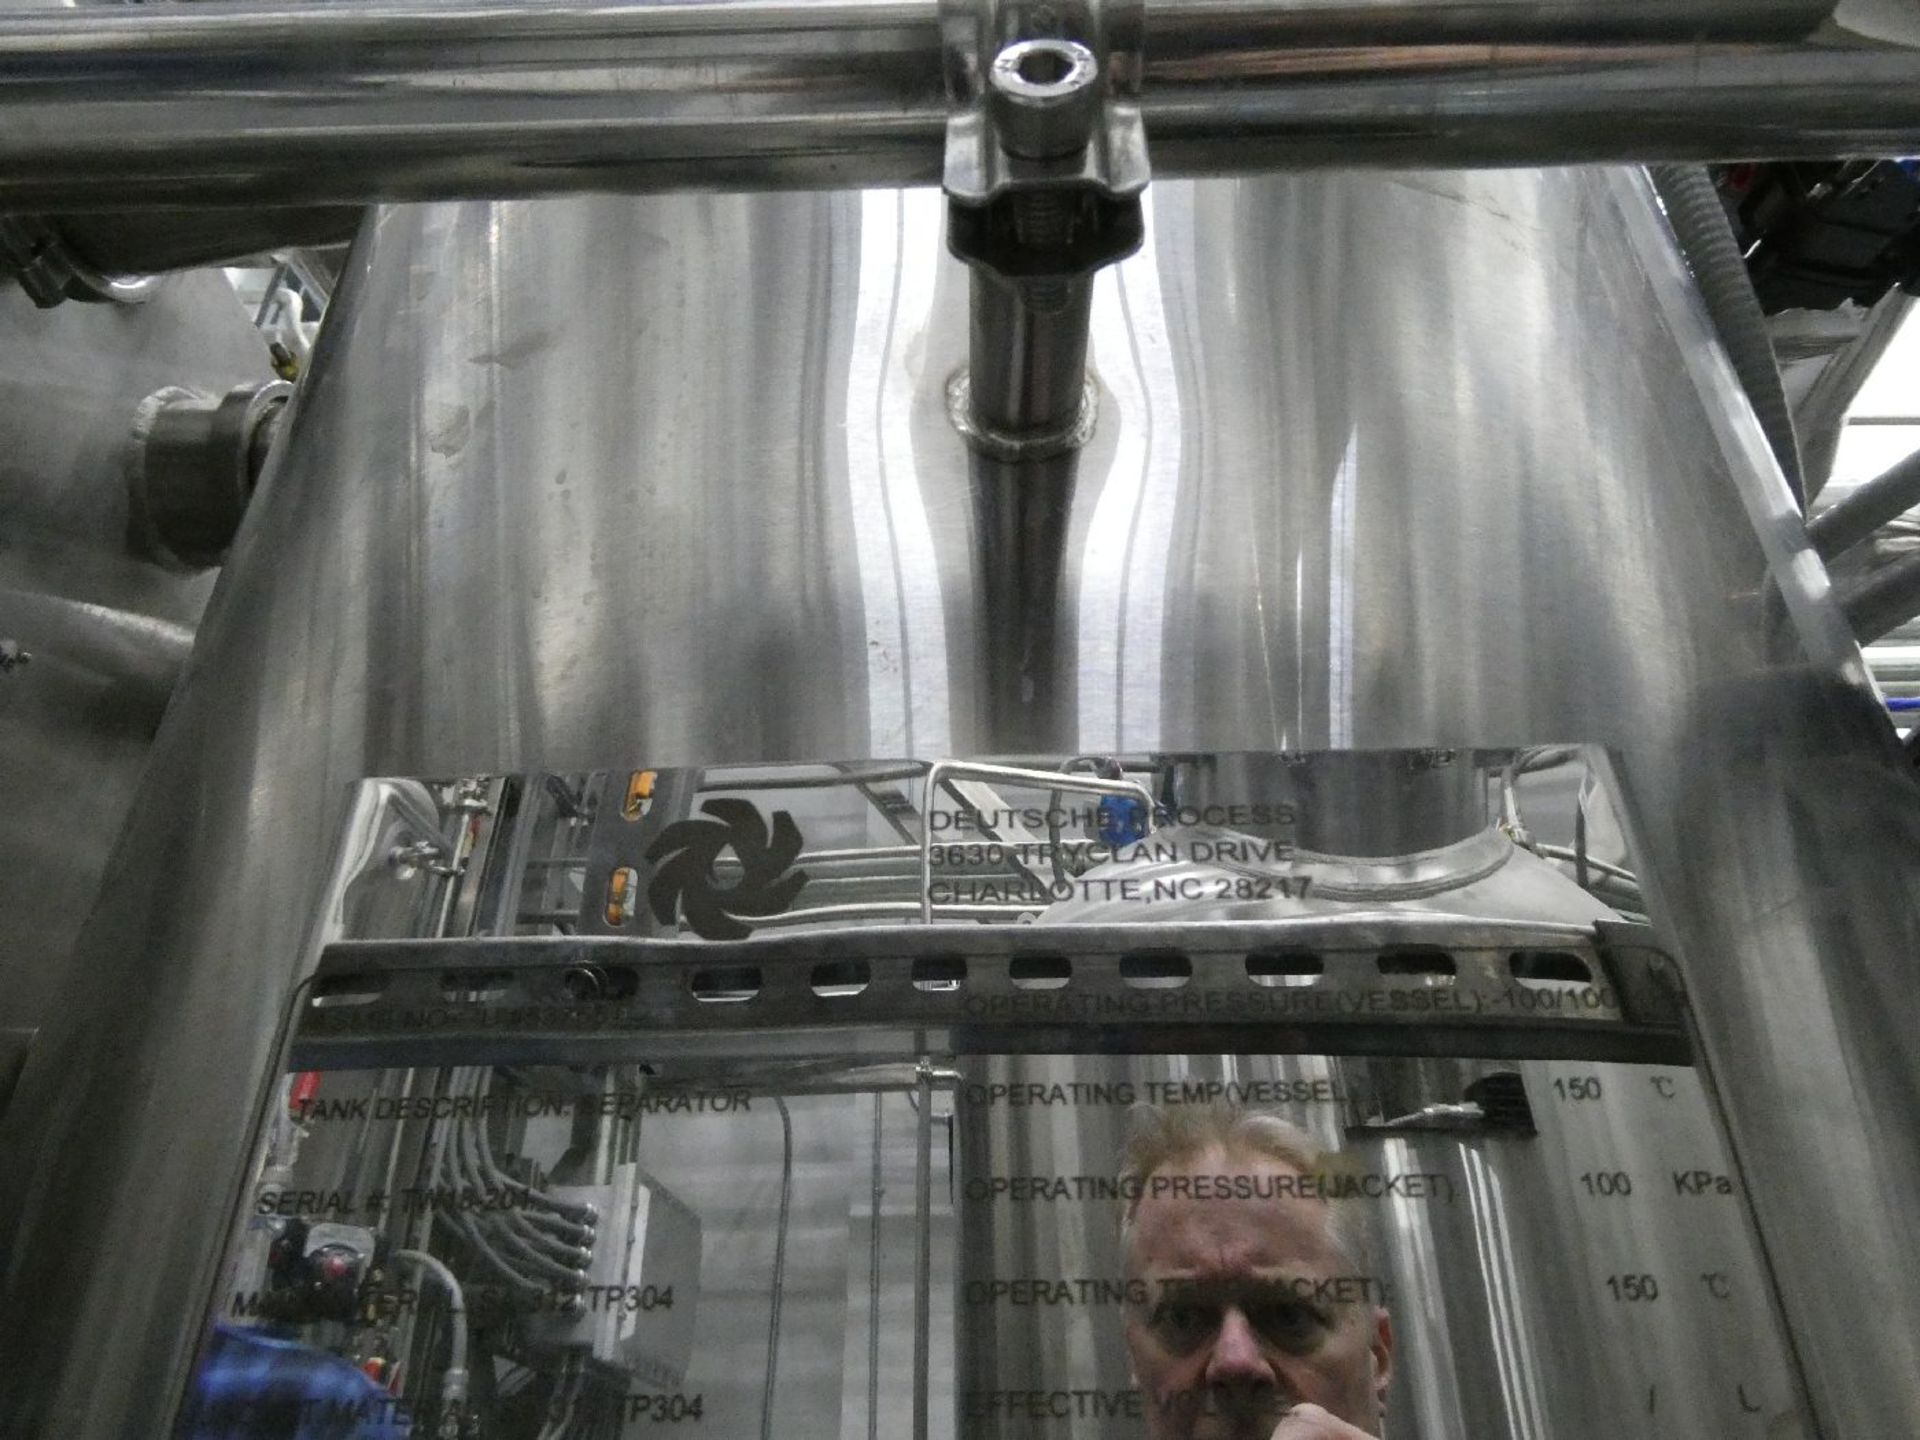 ROTAX Closed Loop Solvent Based Continuous Oil Extraction System - Image 24 of 68